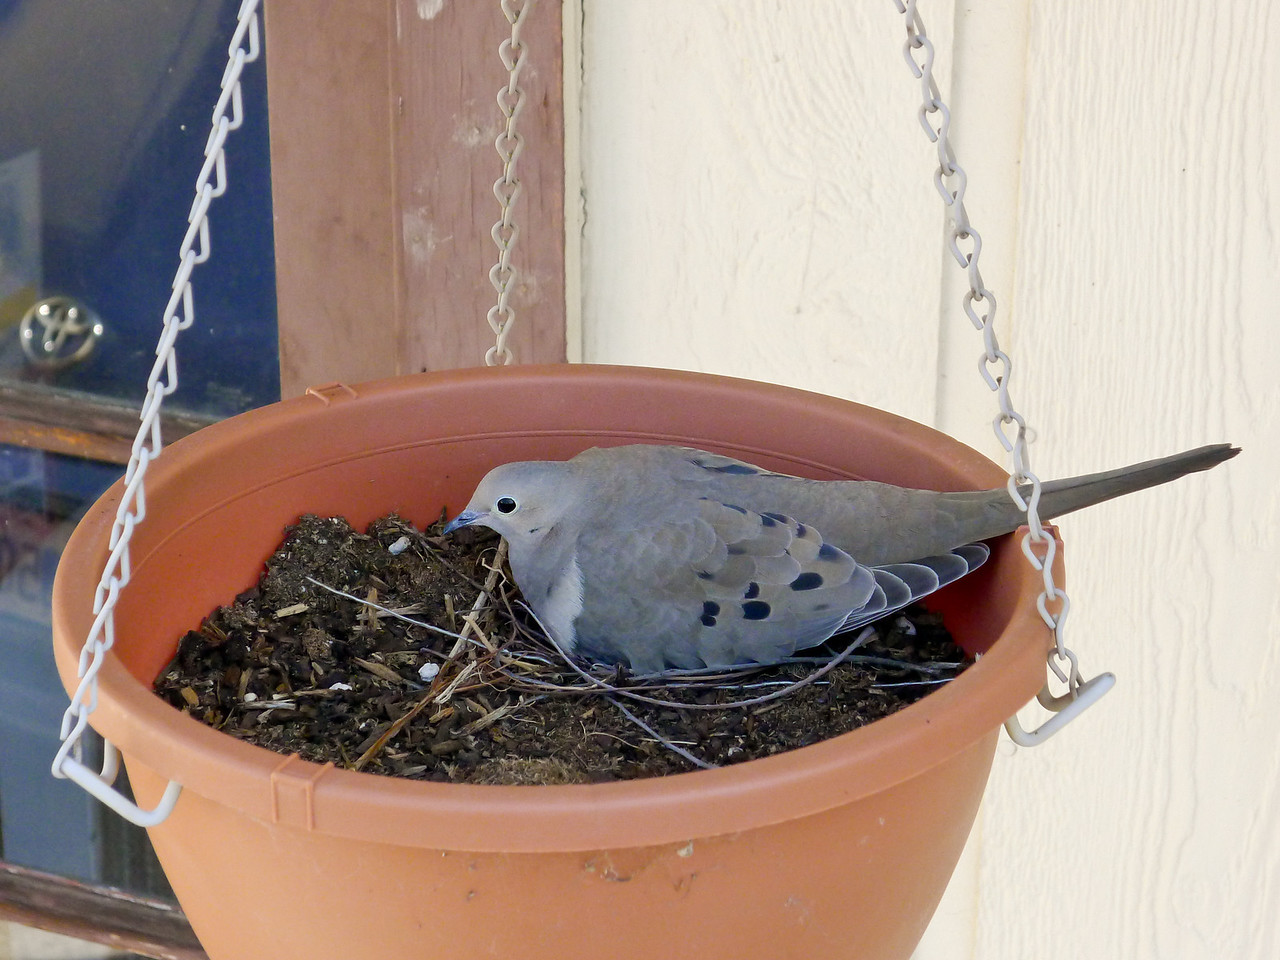 Mourning dove sitting on eggs in a hanging flower pot.